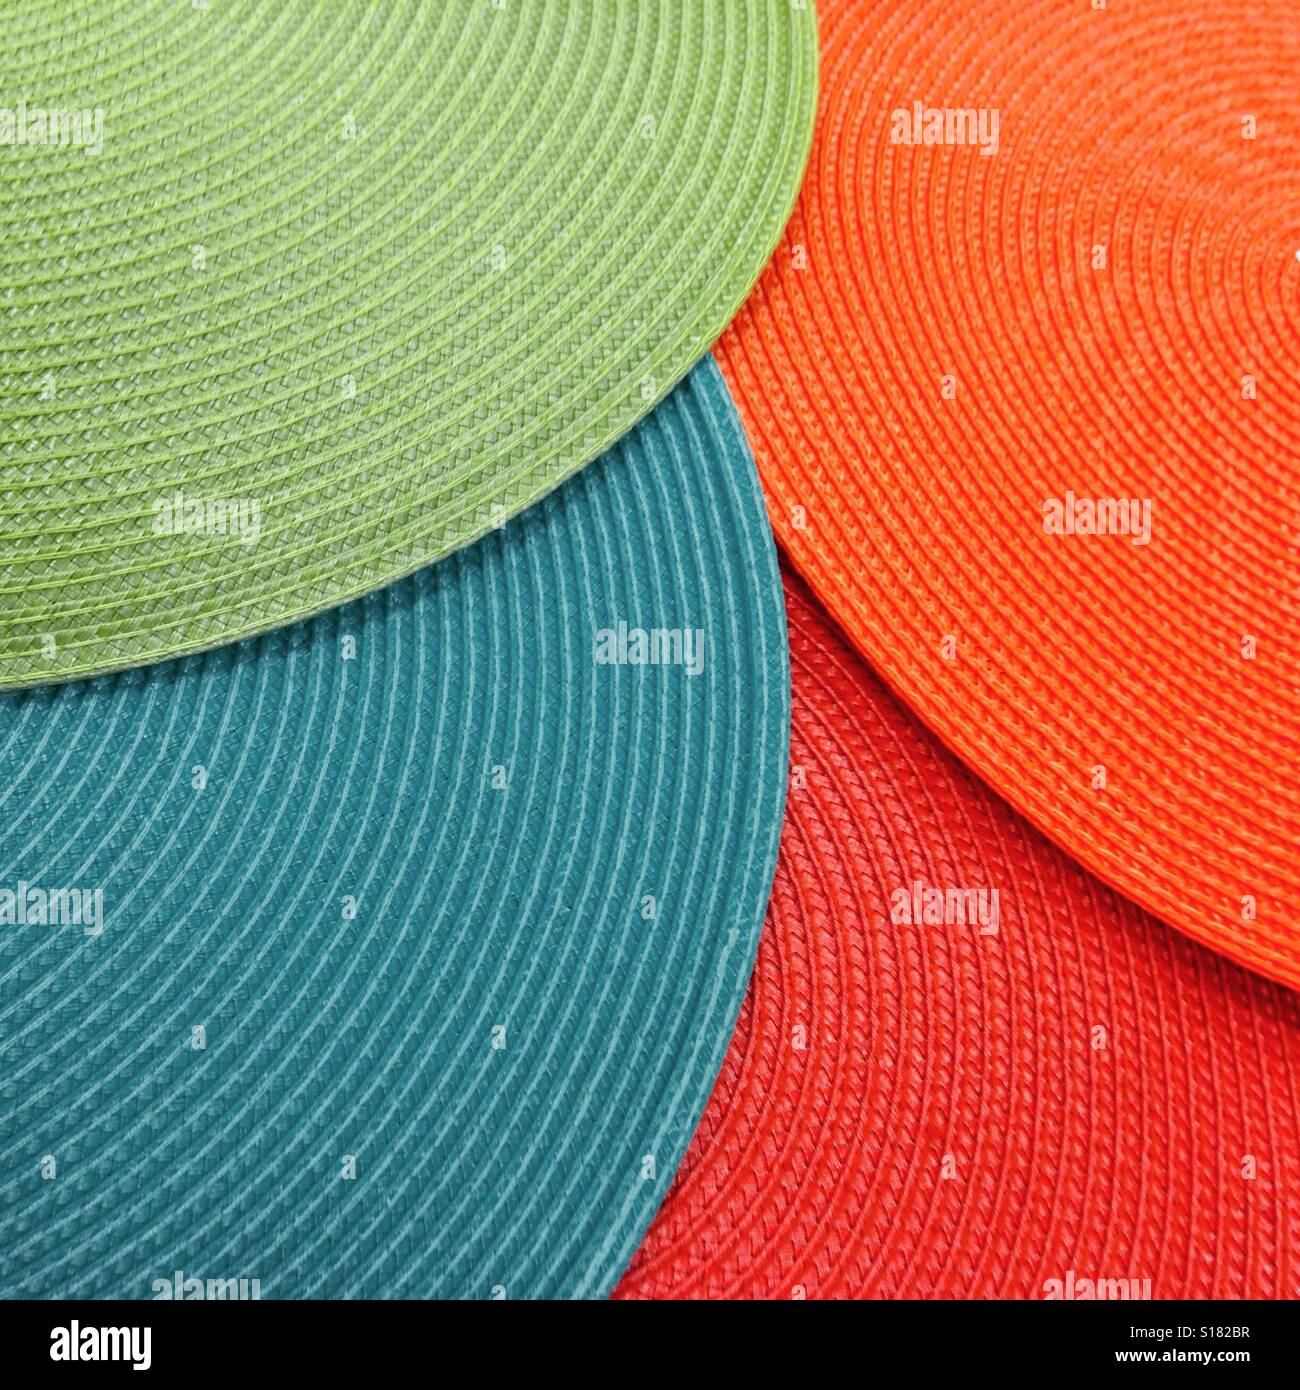 Colorful Round Woven Placemats Overlapping On A Table Top Stock